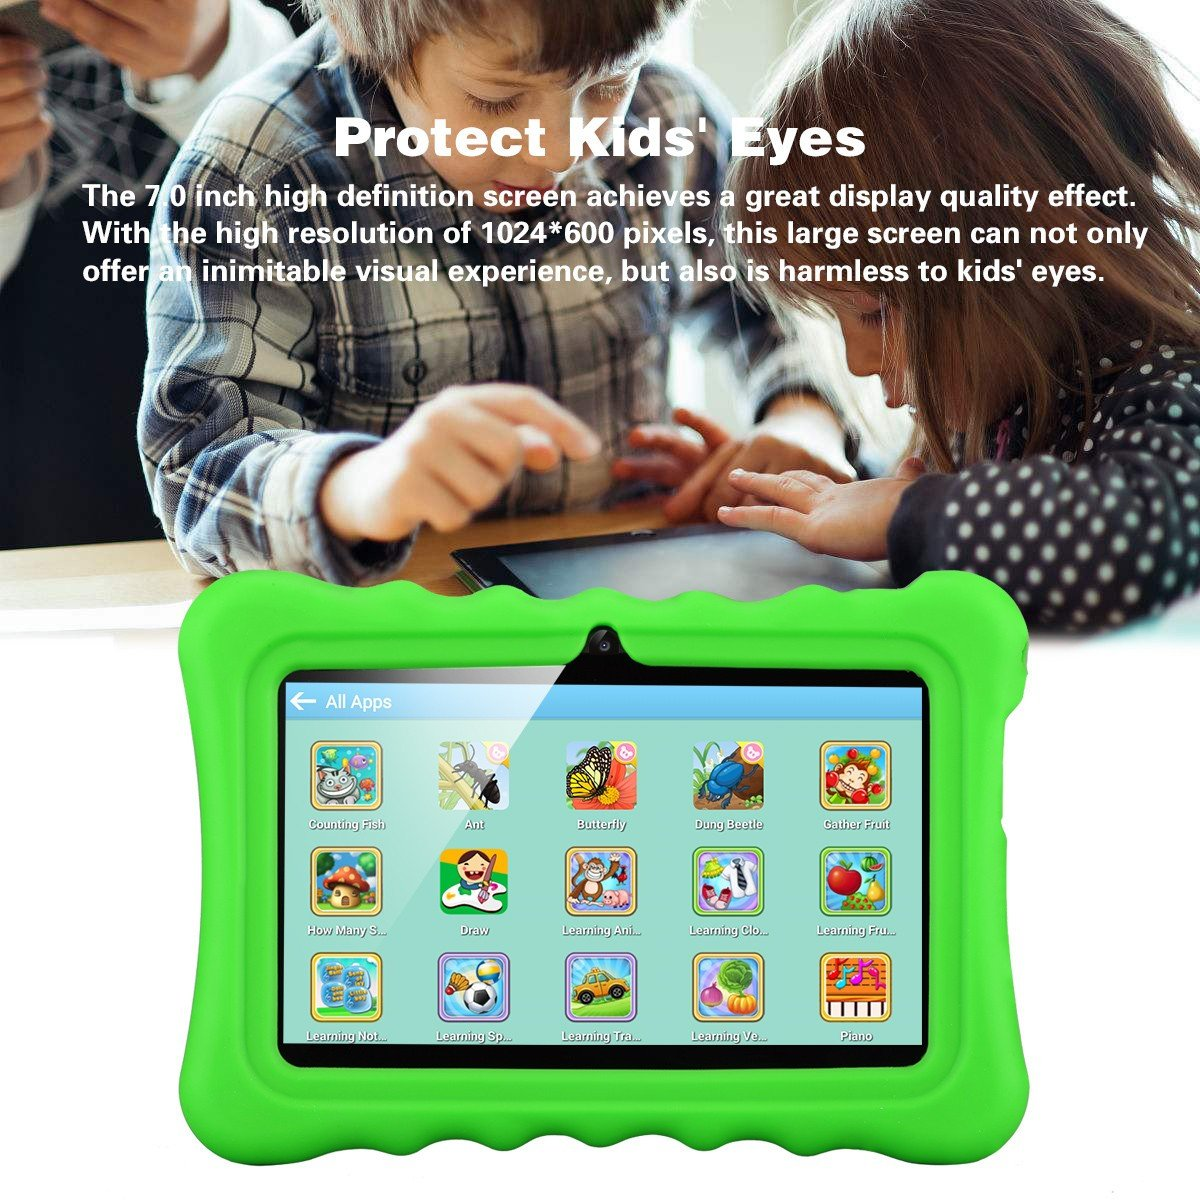 Ainol Q88 7 inch Eye-Protection Tablet with Adult Mode and Child Mode Android 8GB Education Tablet Gifts for Kids Sicicone Case Dual Camera WiFi External 3G by AINOL (Image #4)